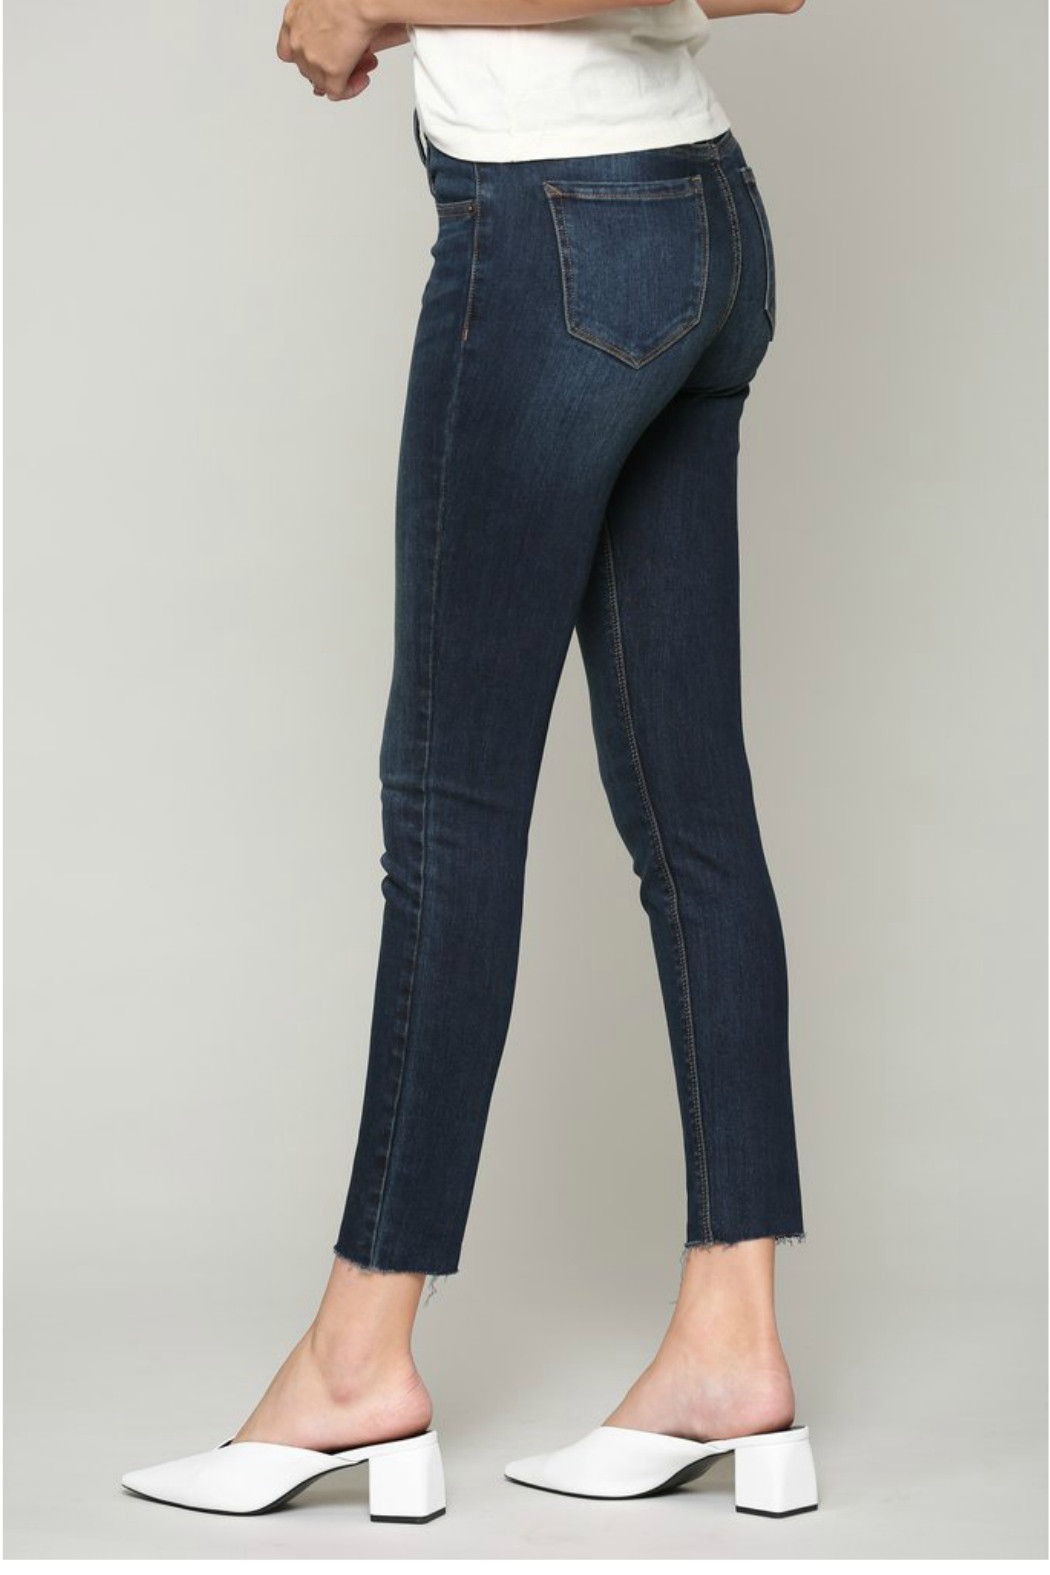 Hidden Jeans AMELIA DARK WASH SKINNY WITH A RAW HEM - Side Cropped Image